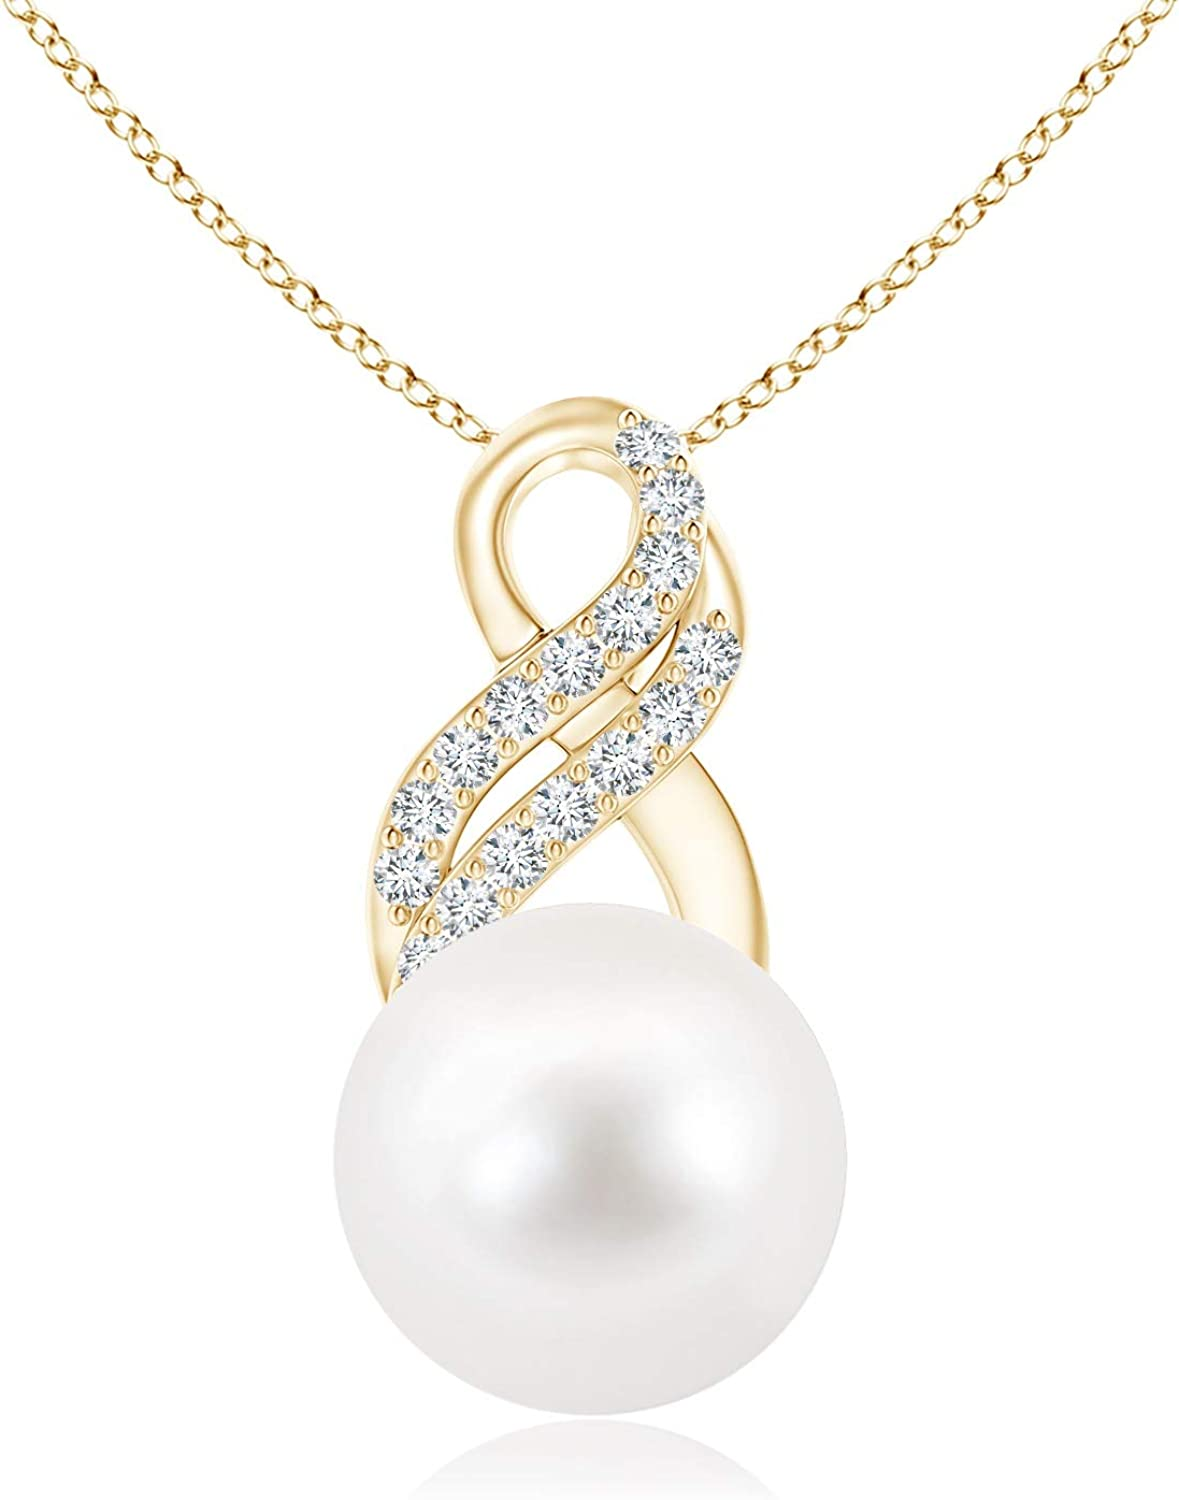 Freshwater Cultured Pearl Drop Pendant Regular store Popular with Infinity Swirl 10mm